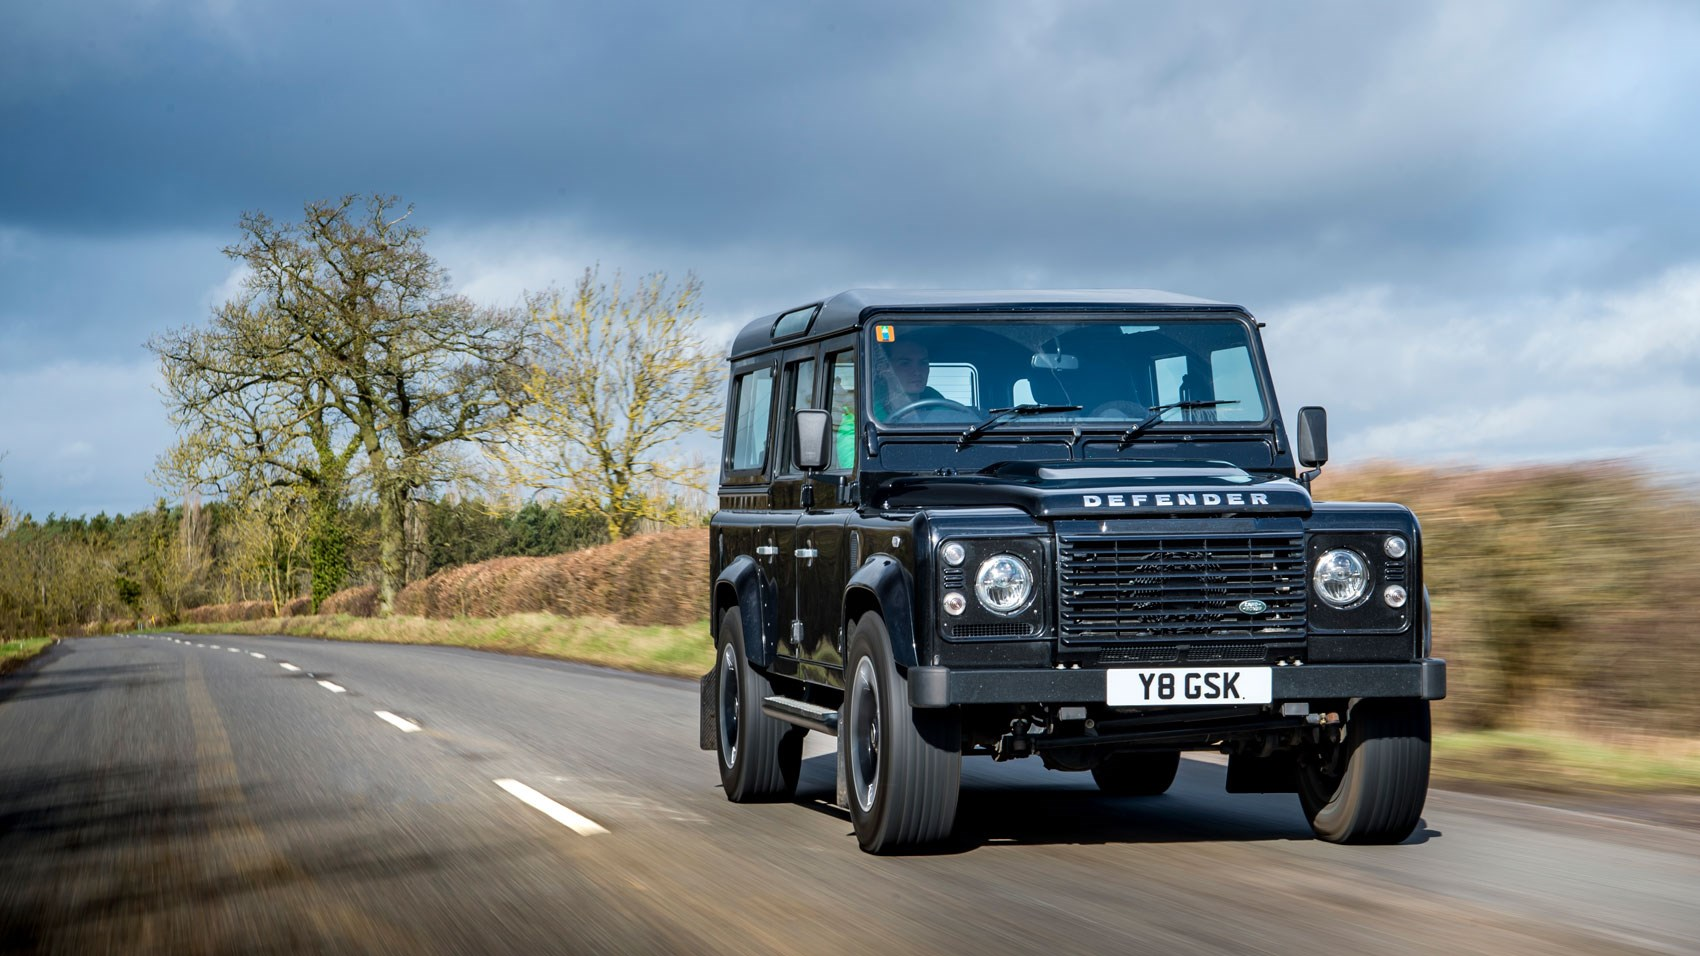 https://www.carmagazine.co.uk/Images/PageFiles/81261/Defender_WorksV8_05.jpg